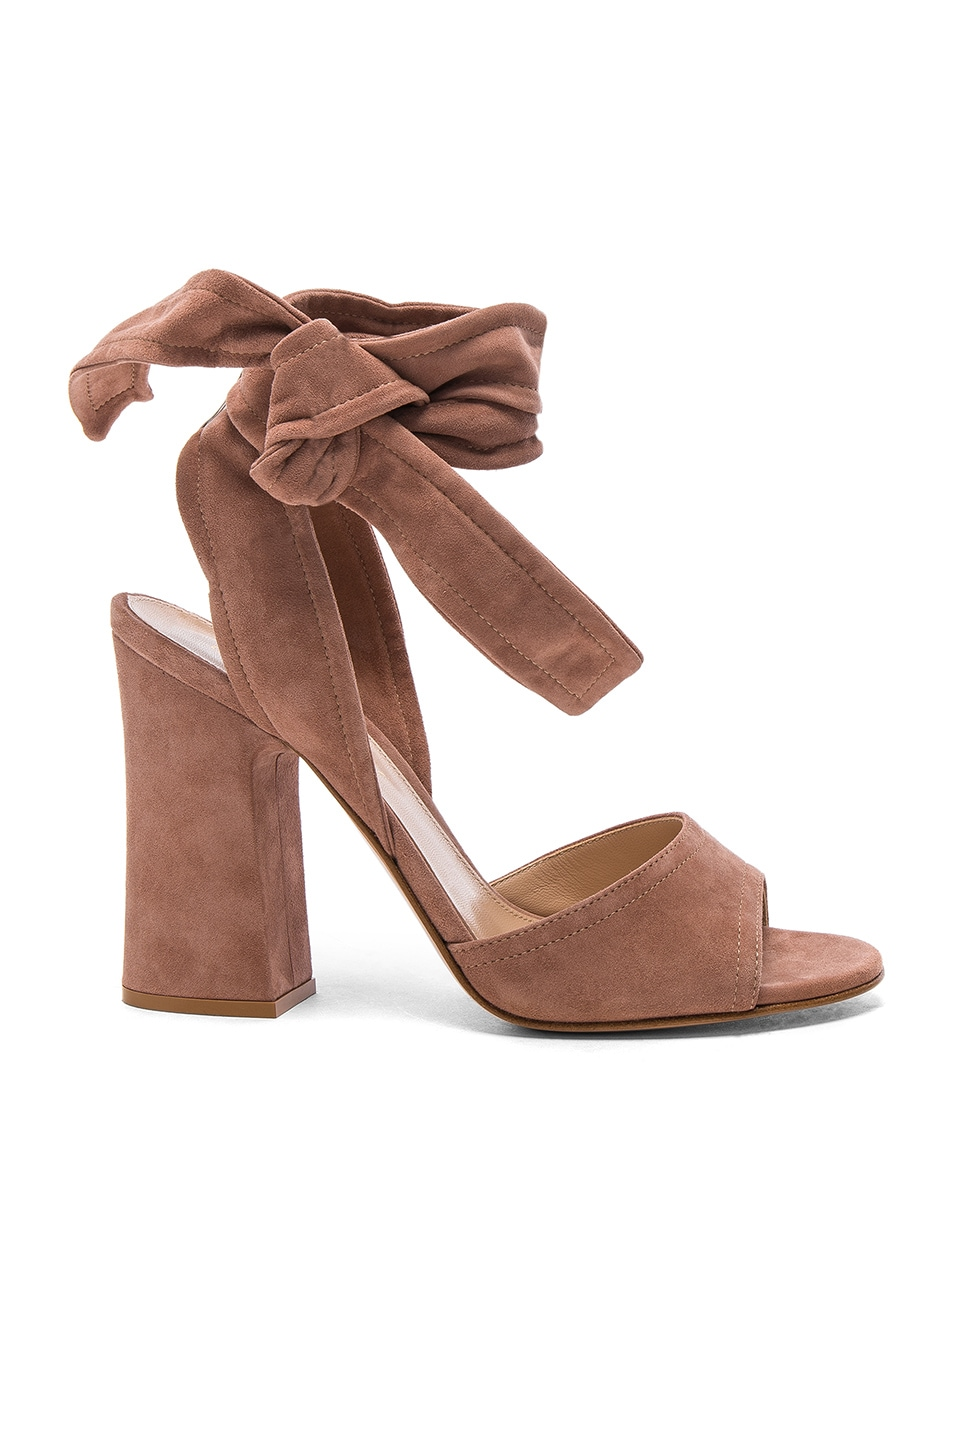 Image 1 of Gianvito Rossi Suede Ankle Tie Heels in Praline